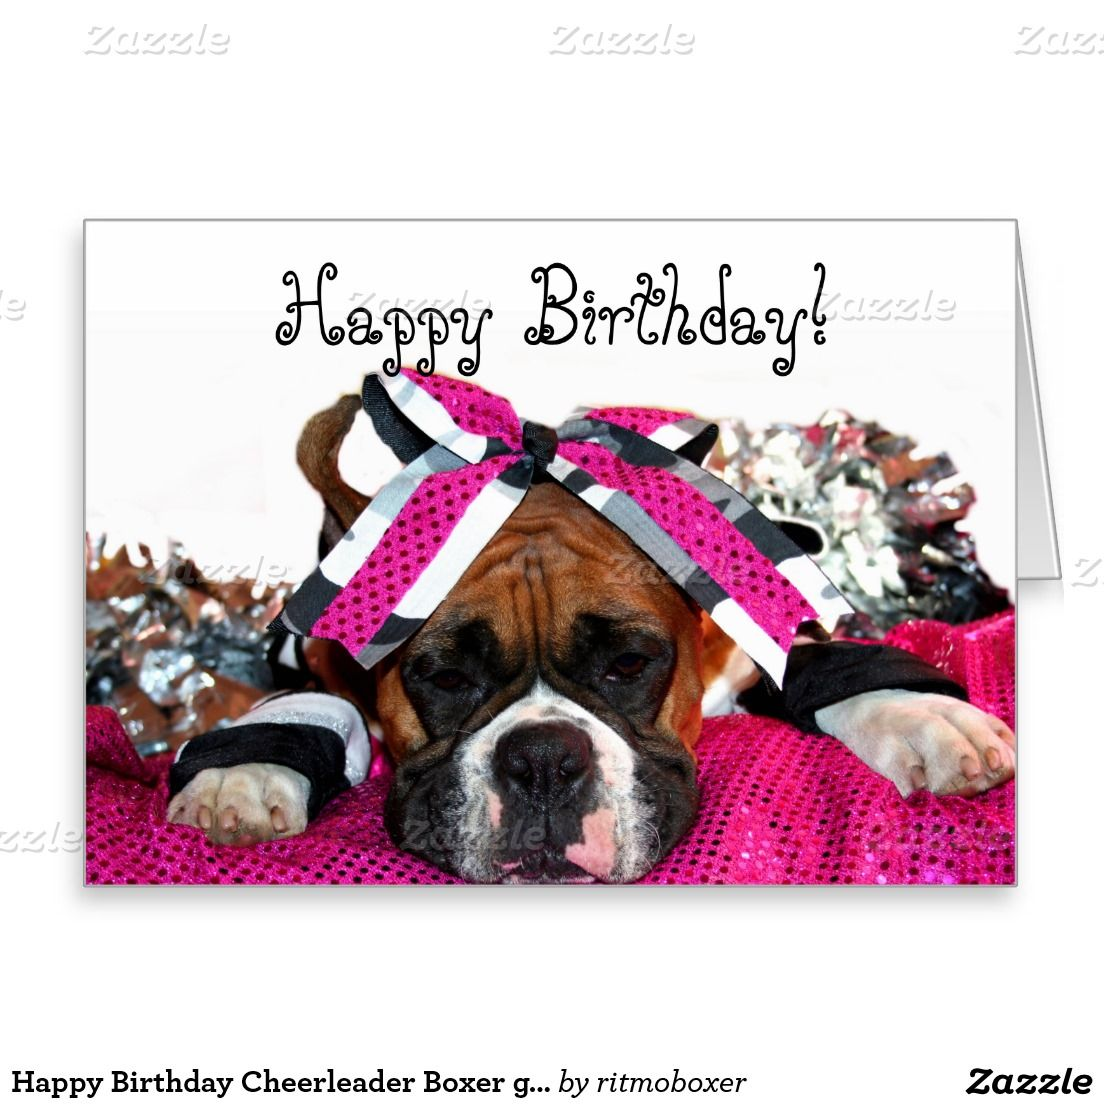 Happy Birthday Cheerleader Boxer Greeting Card